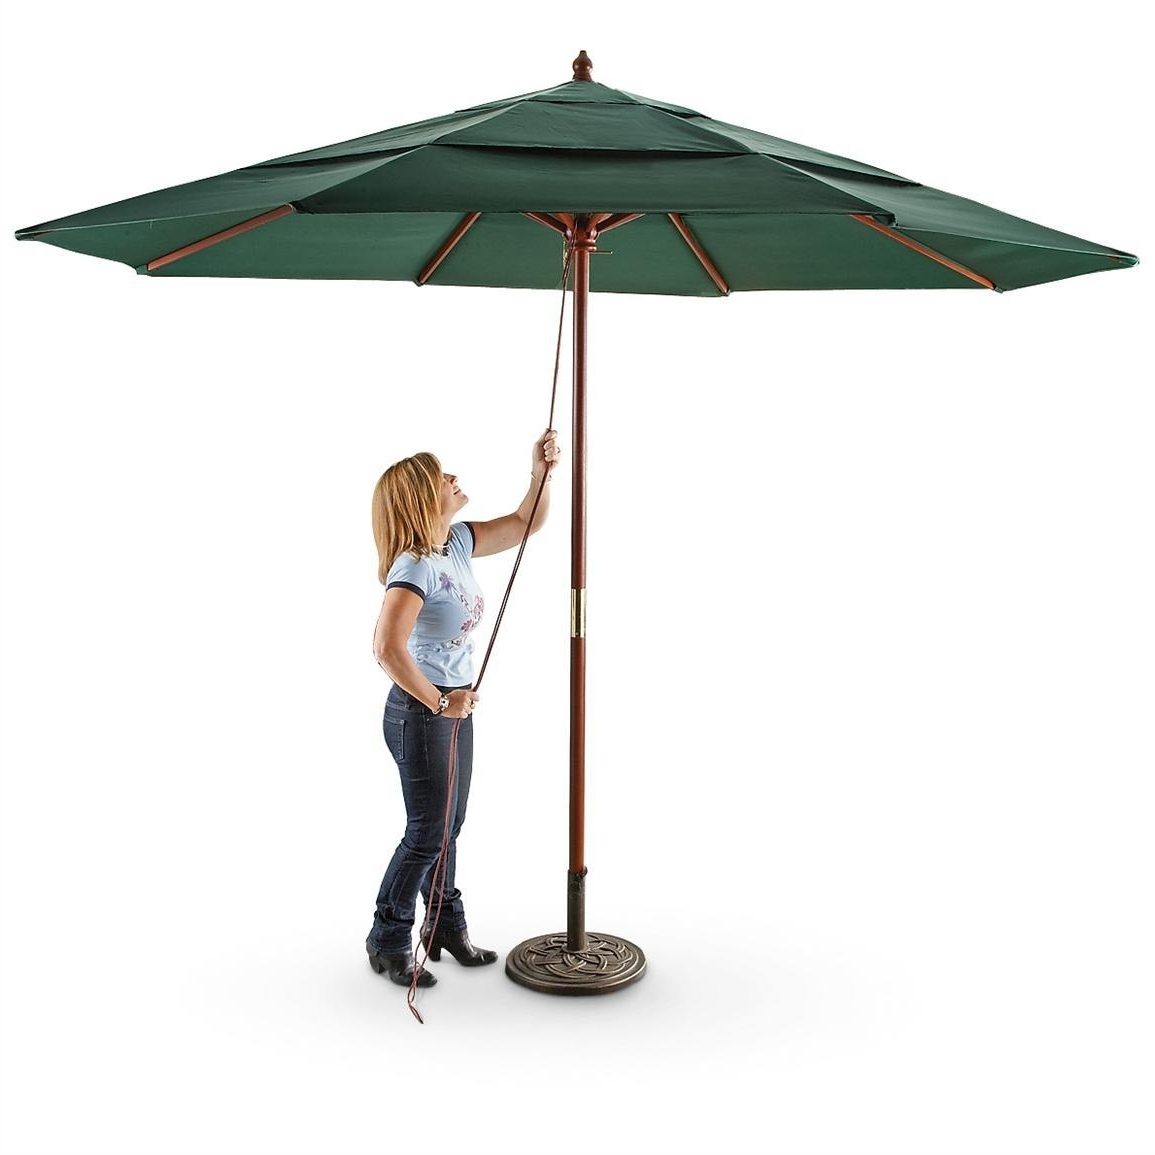 Most Recent Zspmed Of 11 Ft Patio Umbrella Pertaining To 11 Foot Patio Umbrellas (View 12 of 20)